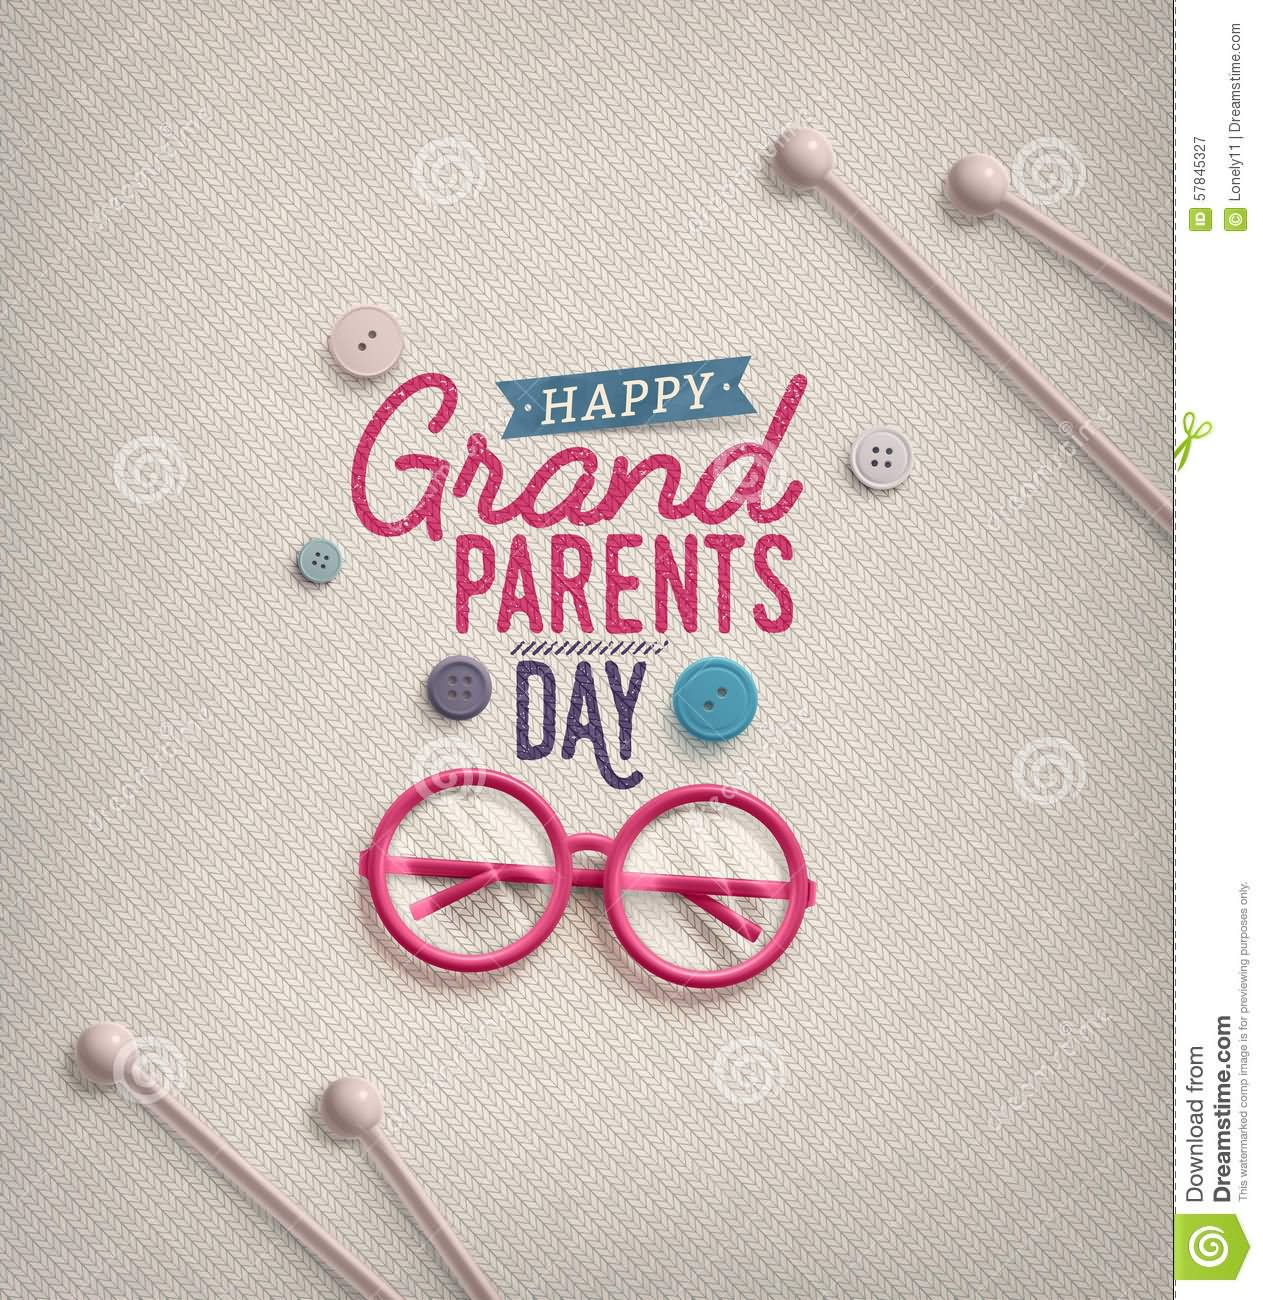 35 Most Beautiful Grandparents Day Greeting Card Images